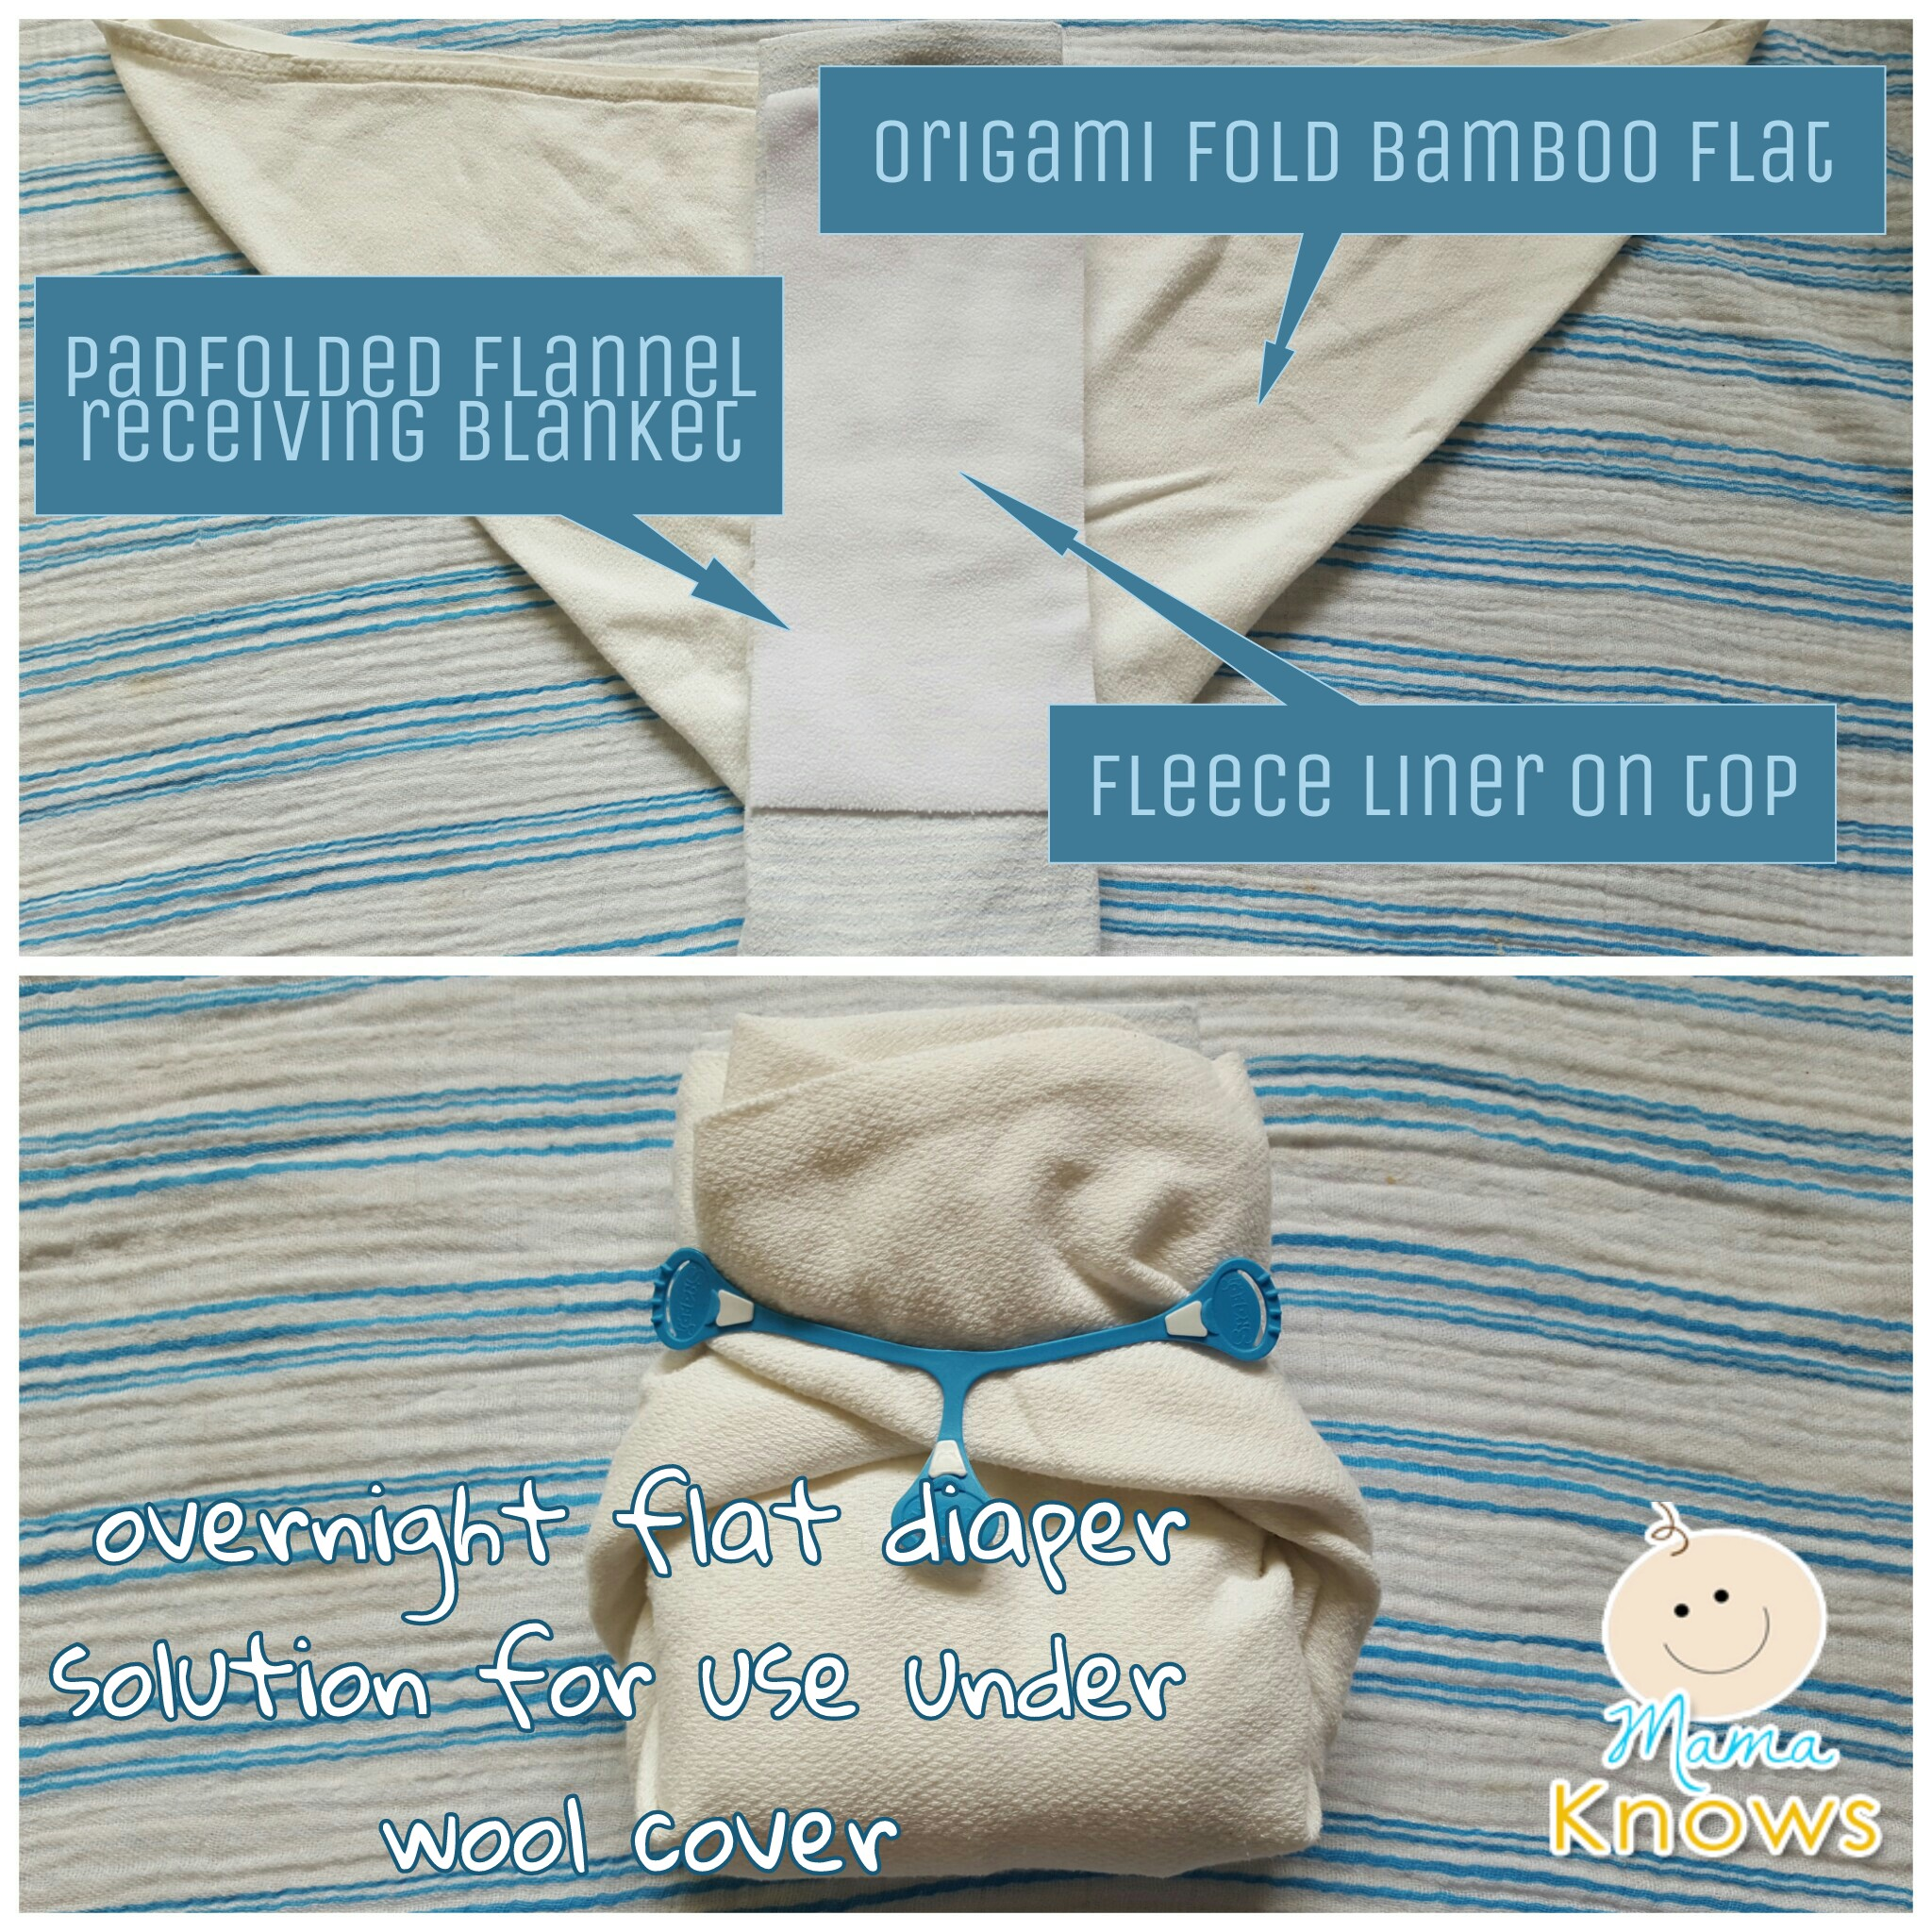 Overnight flat cloth diaper solution for use with Wool Covers